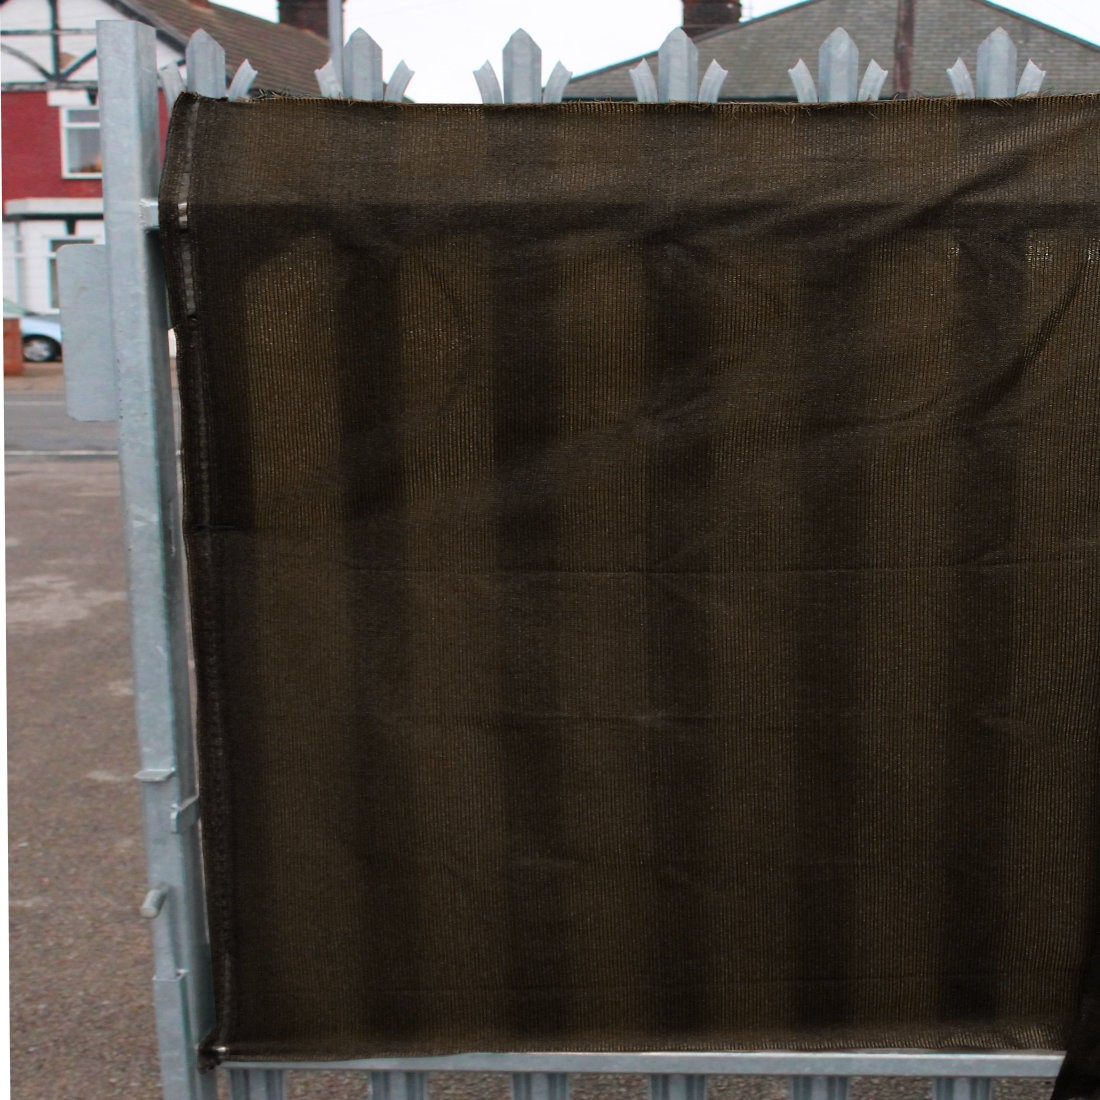 98% Brown Shade Netting also for Privacy Screening